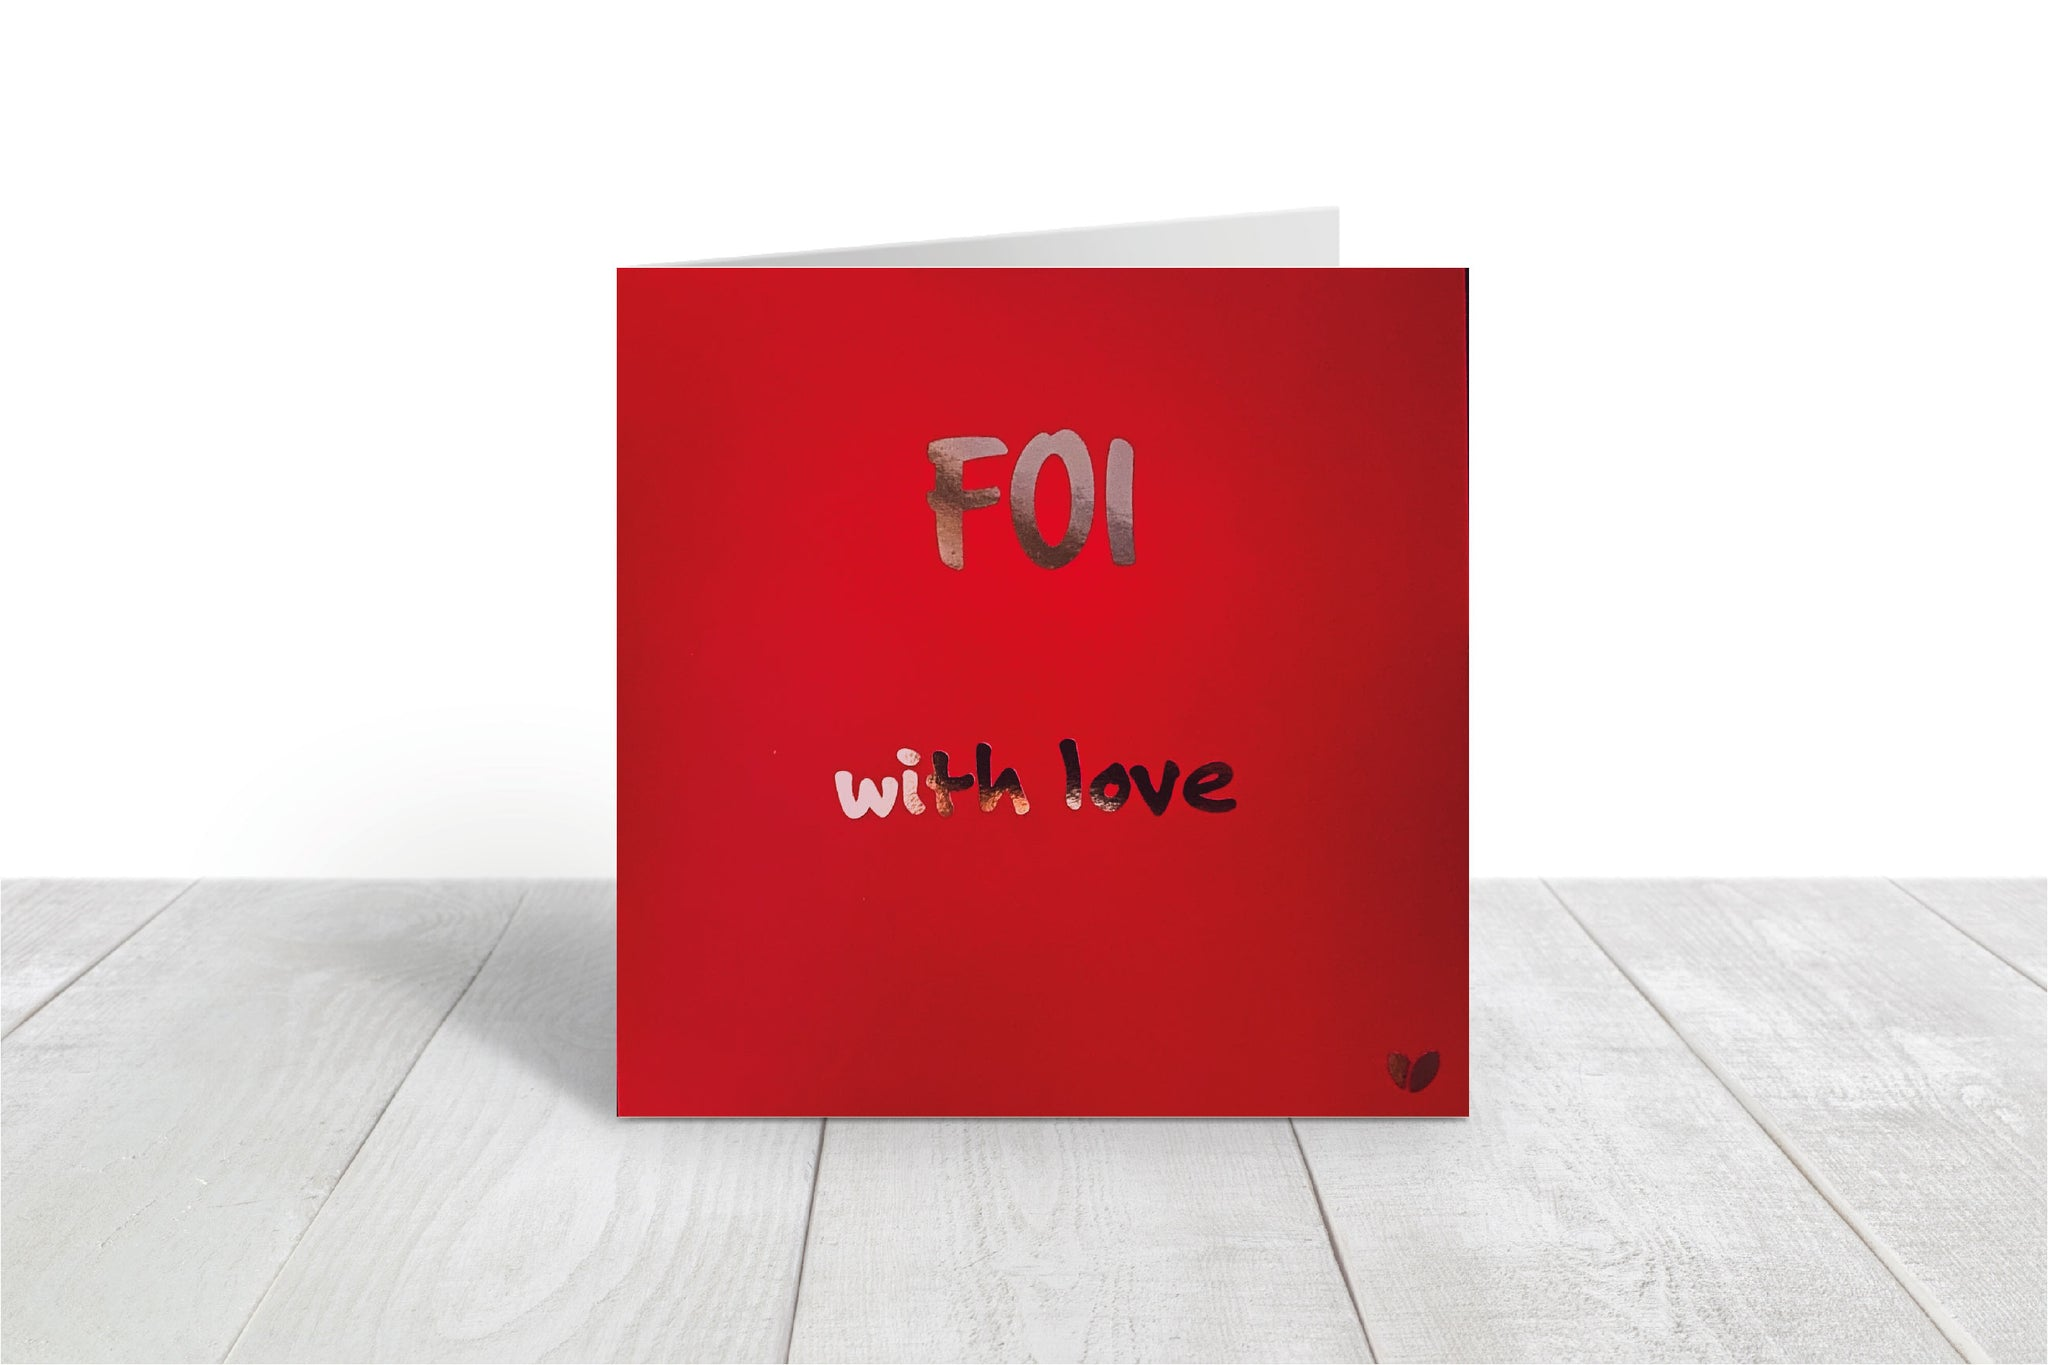 Foi, with love greeting card